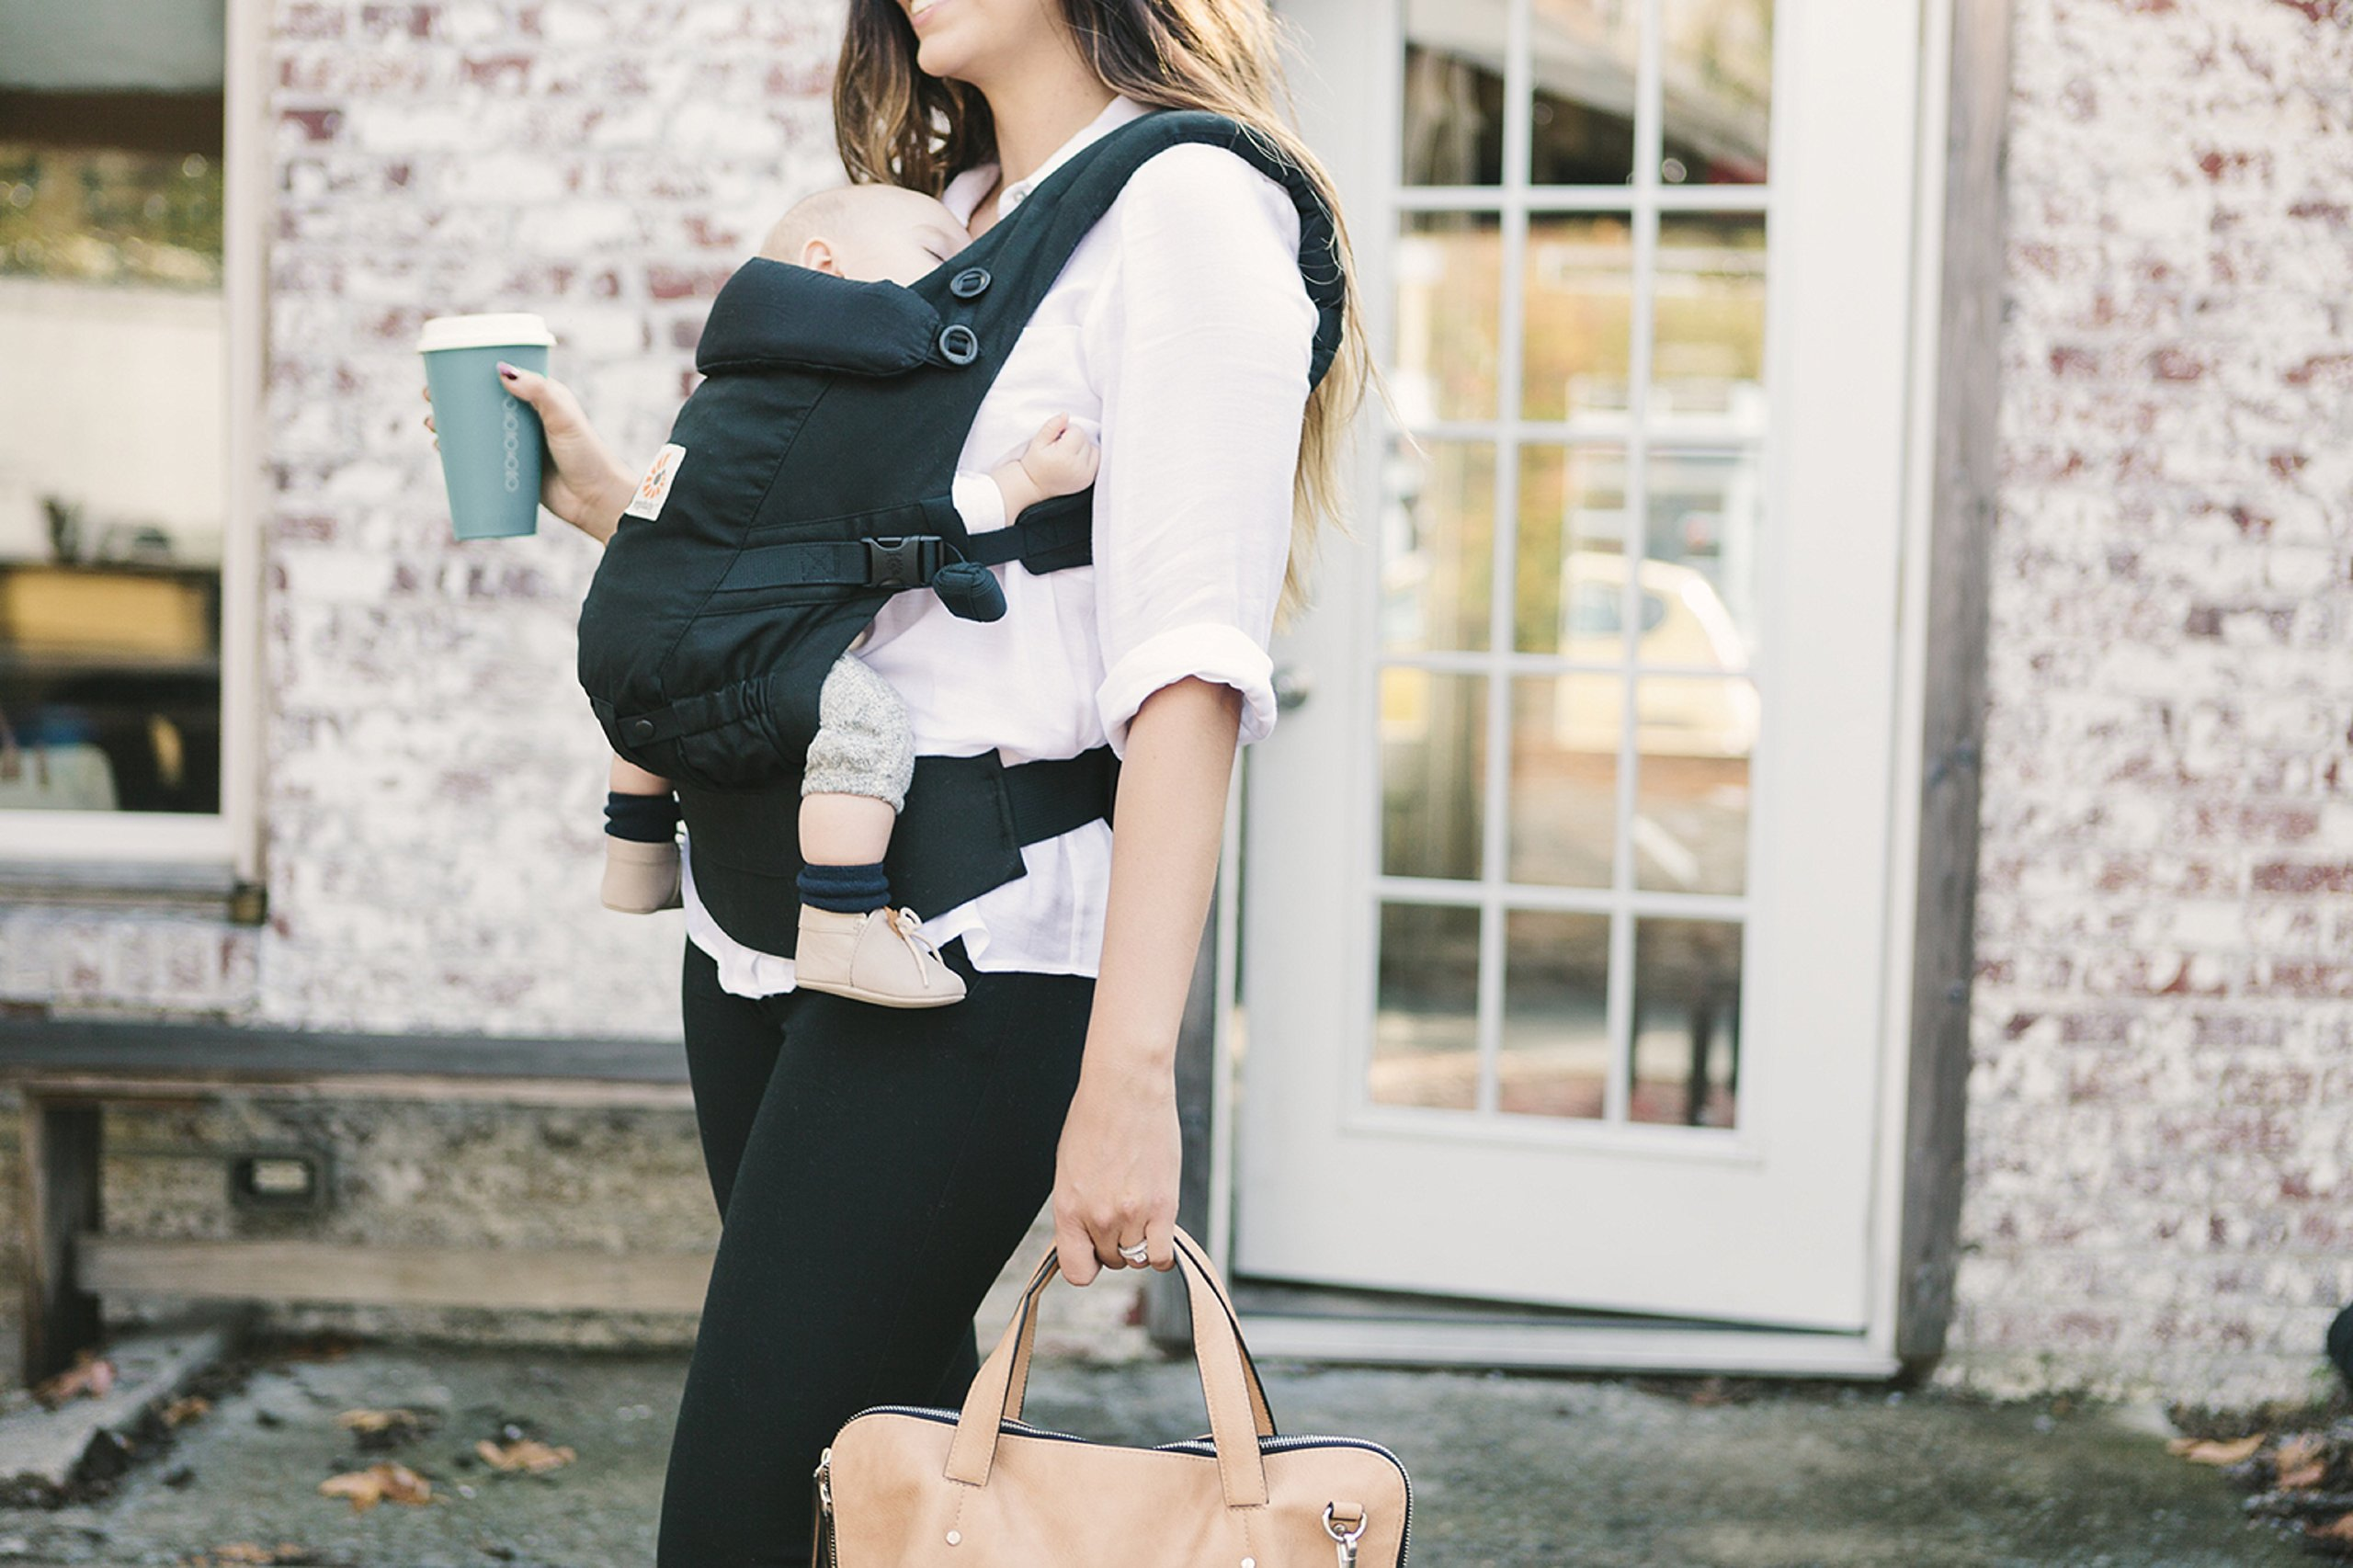 ErgoBaby Adapt Baby Carrier Black Ergobaby Adapt to Every Baby Easy. Adjustable. Newborn to toddler. 6